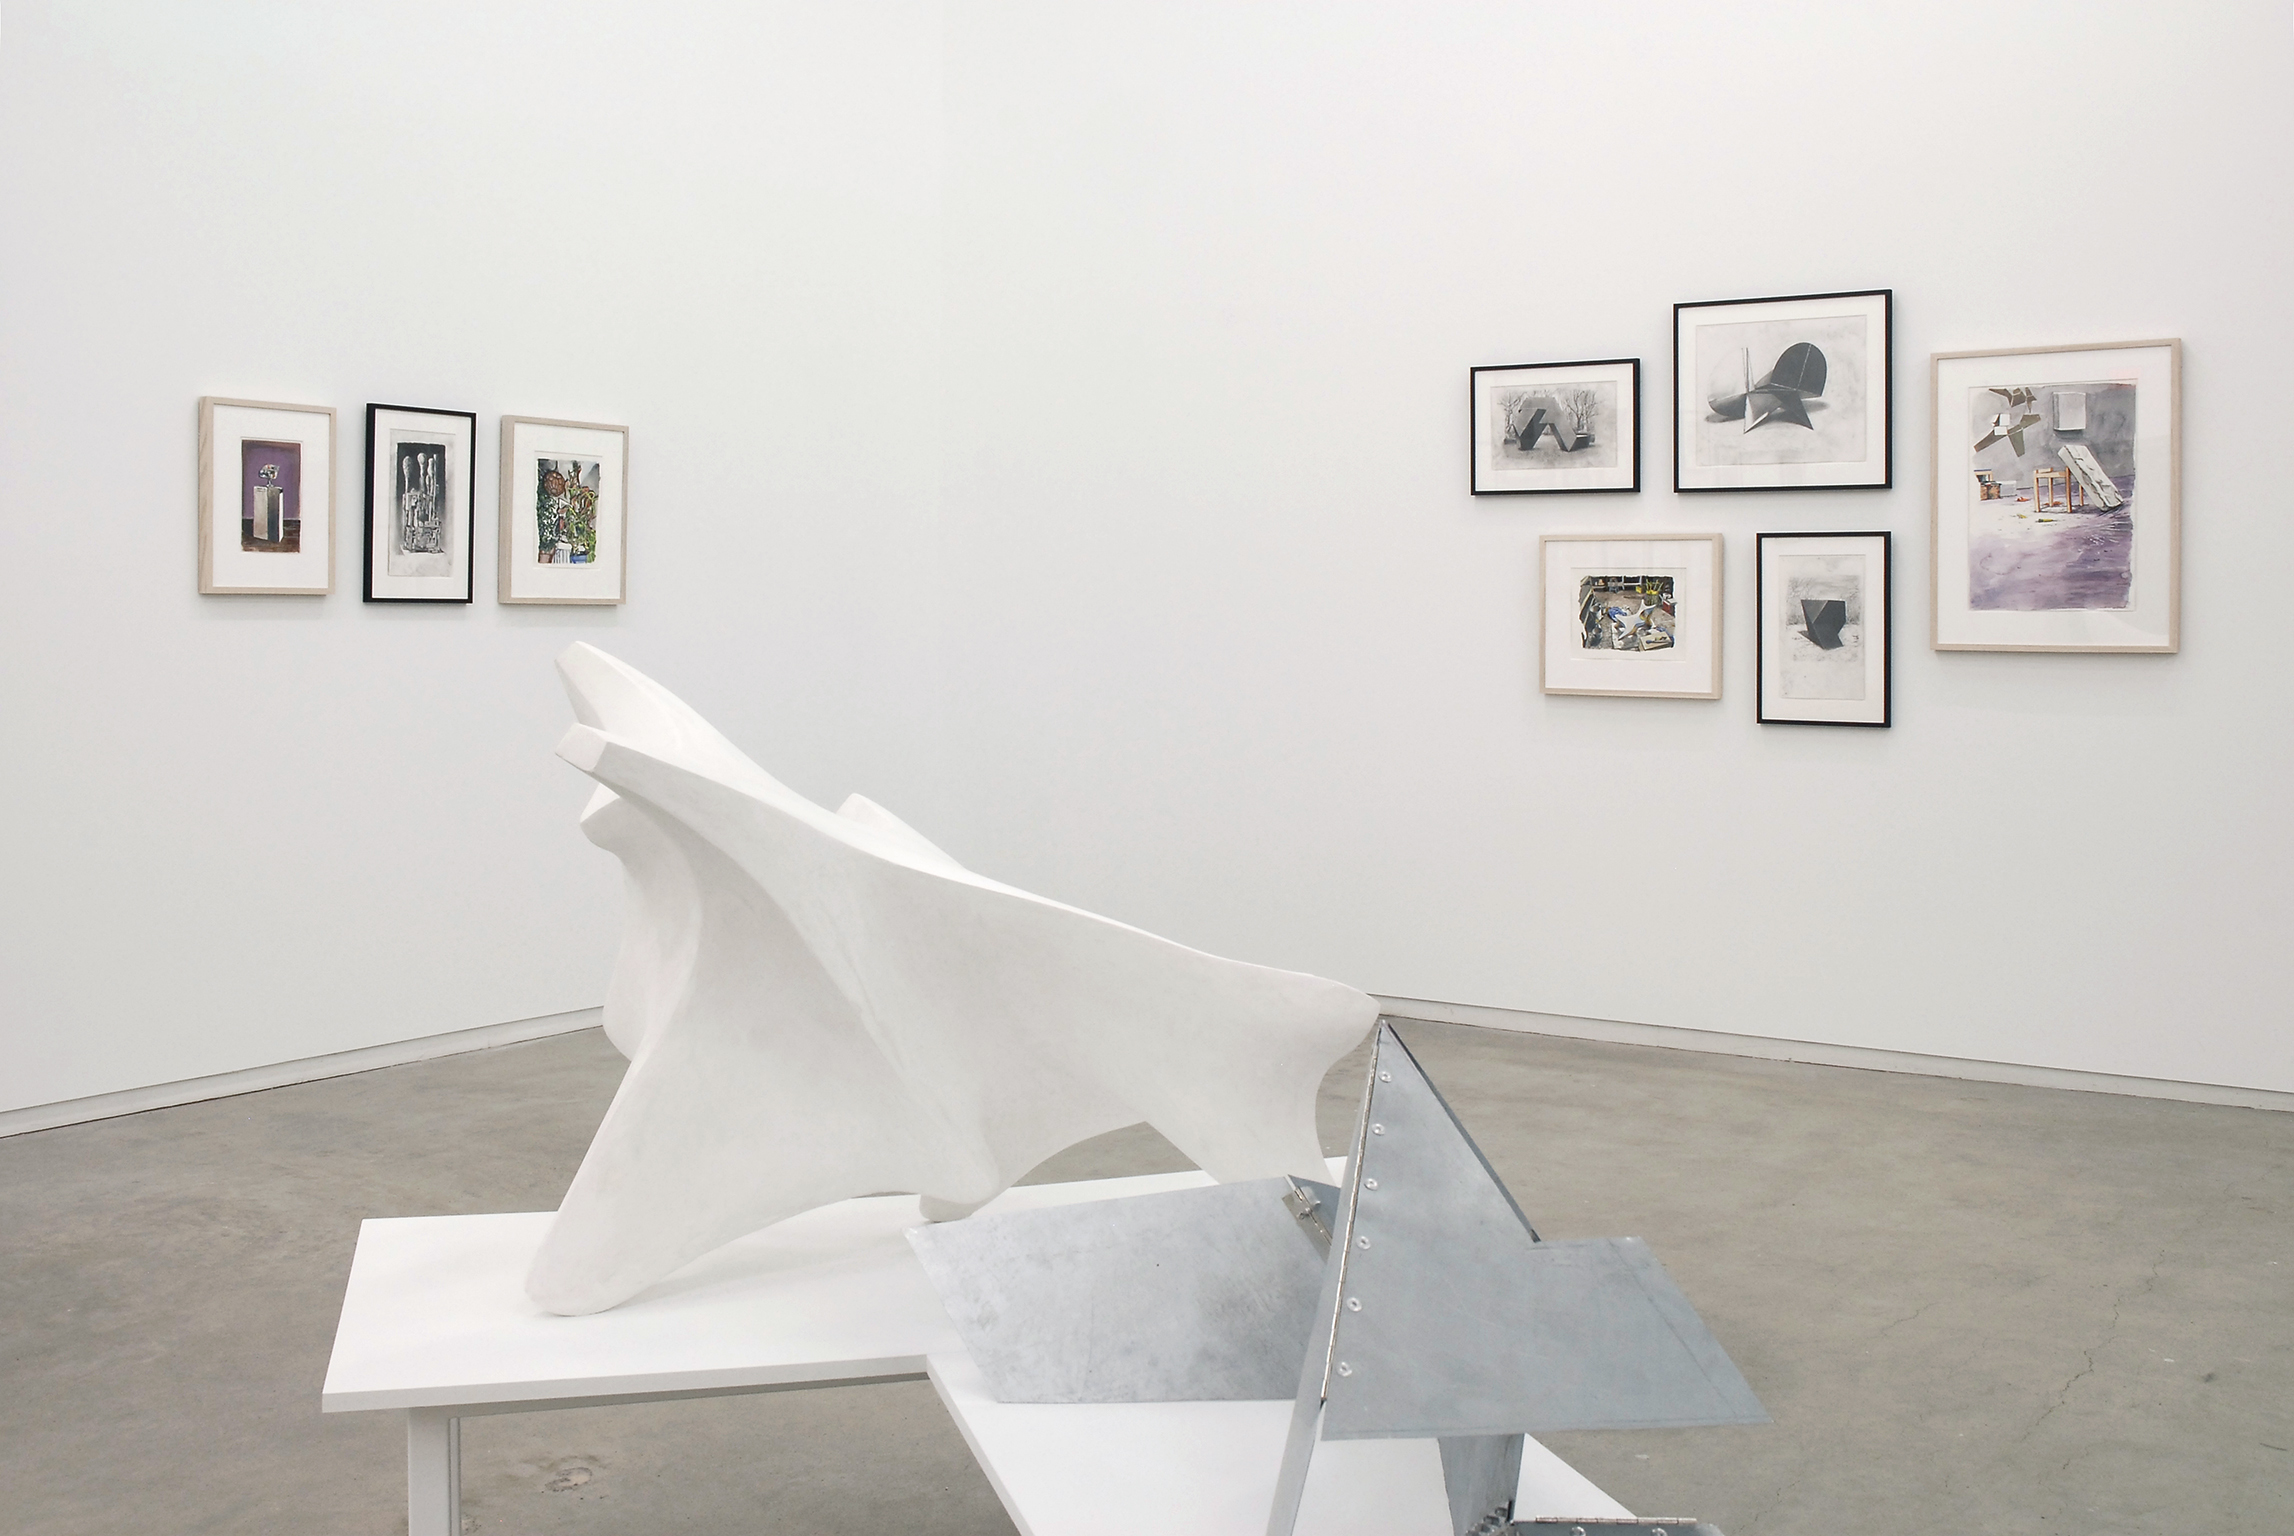 ​Roy Kiyooka, Damian Moppett, Jerry Pethick, Ian Wallace, installation view, Process as Work​, Catriona Jeffries, 2008 by